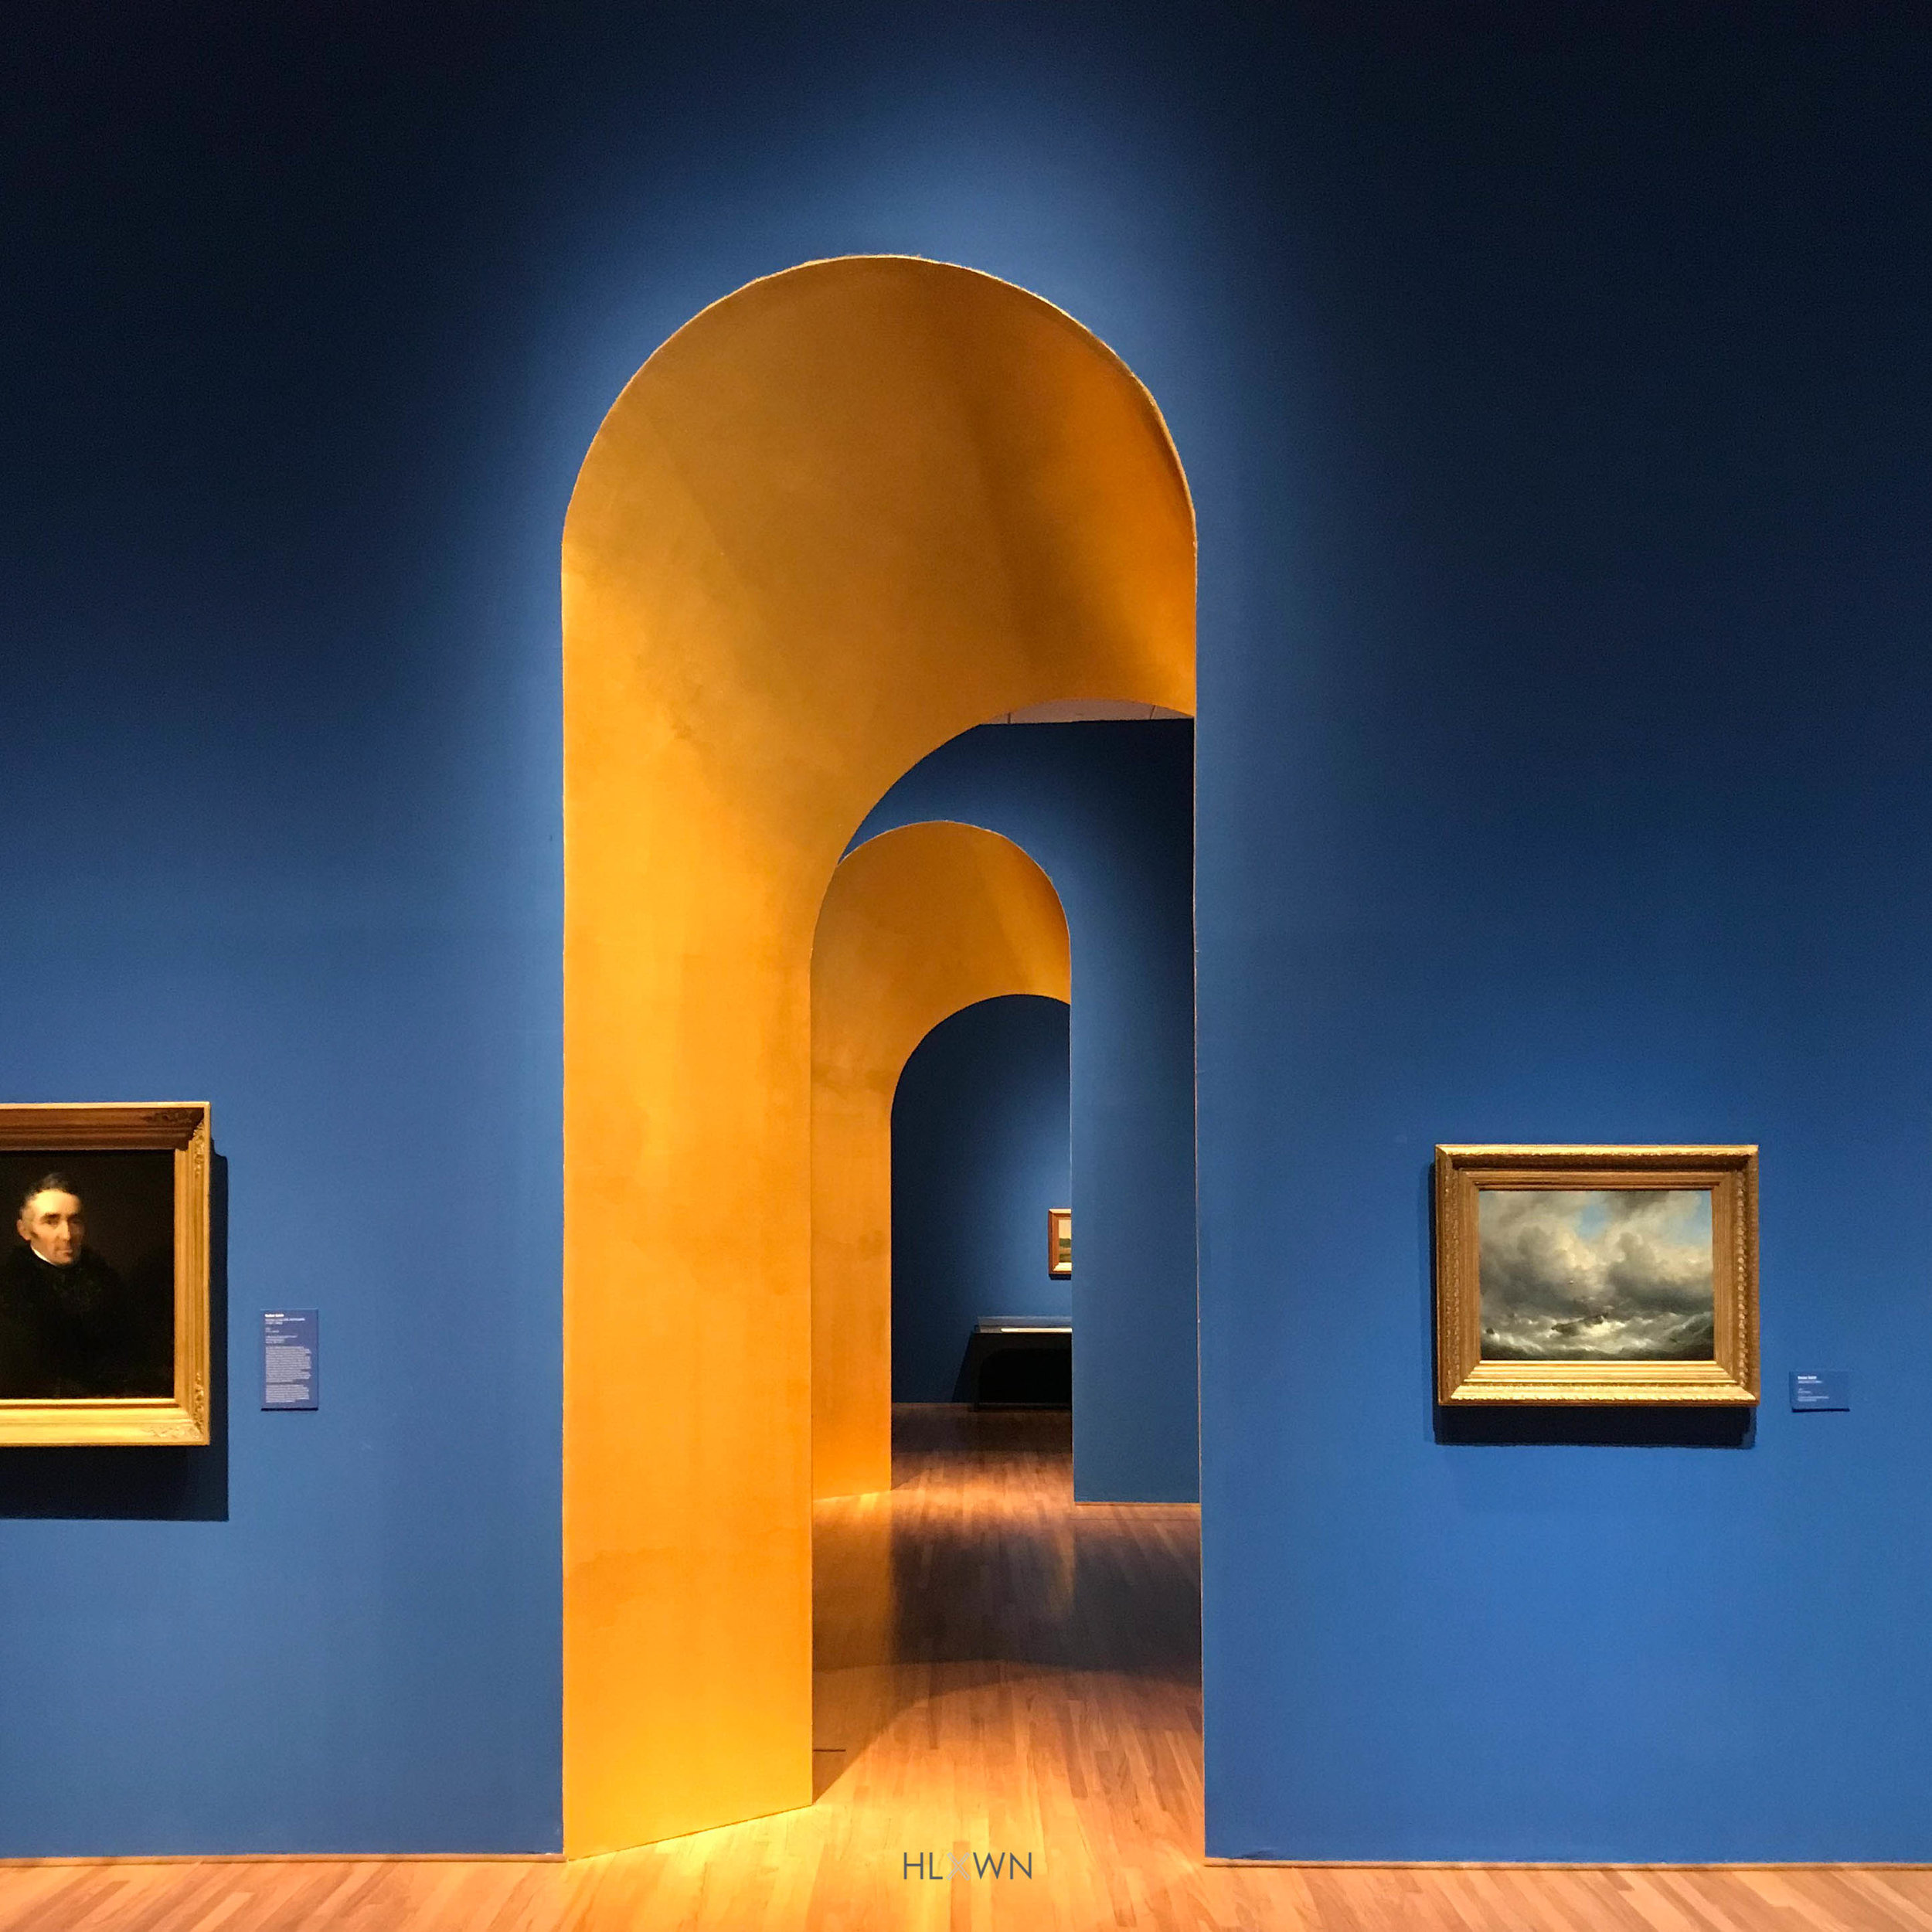 A Beautiful Blue and Gold Arch Doorway at the Between Worlds Exhibit